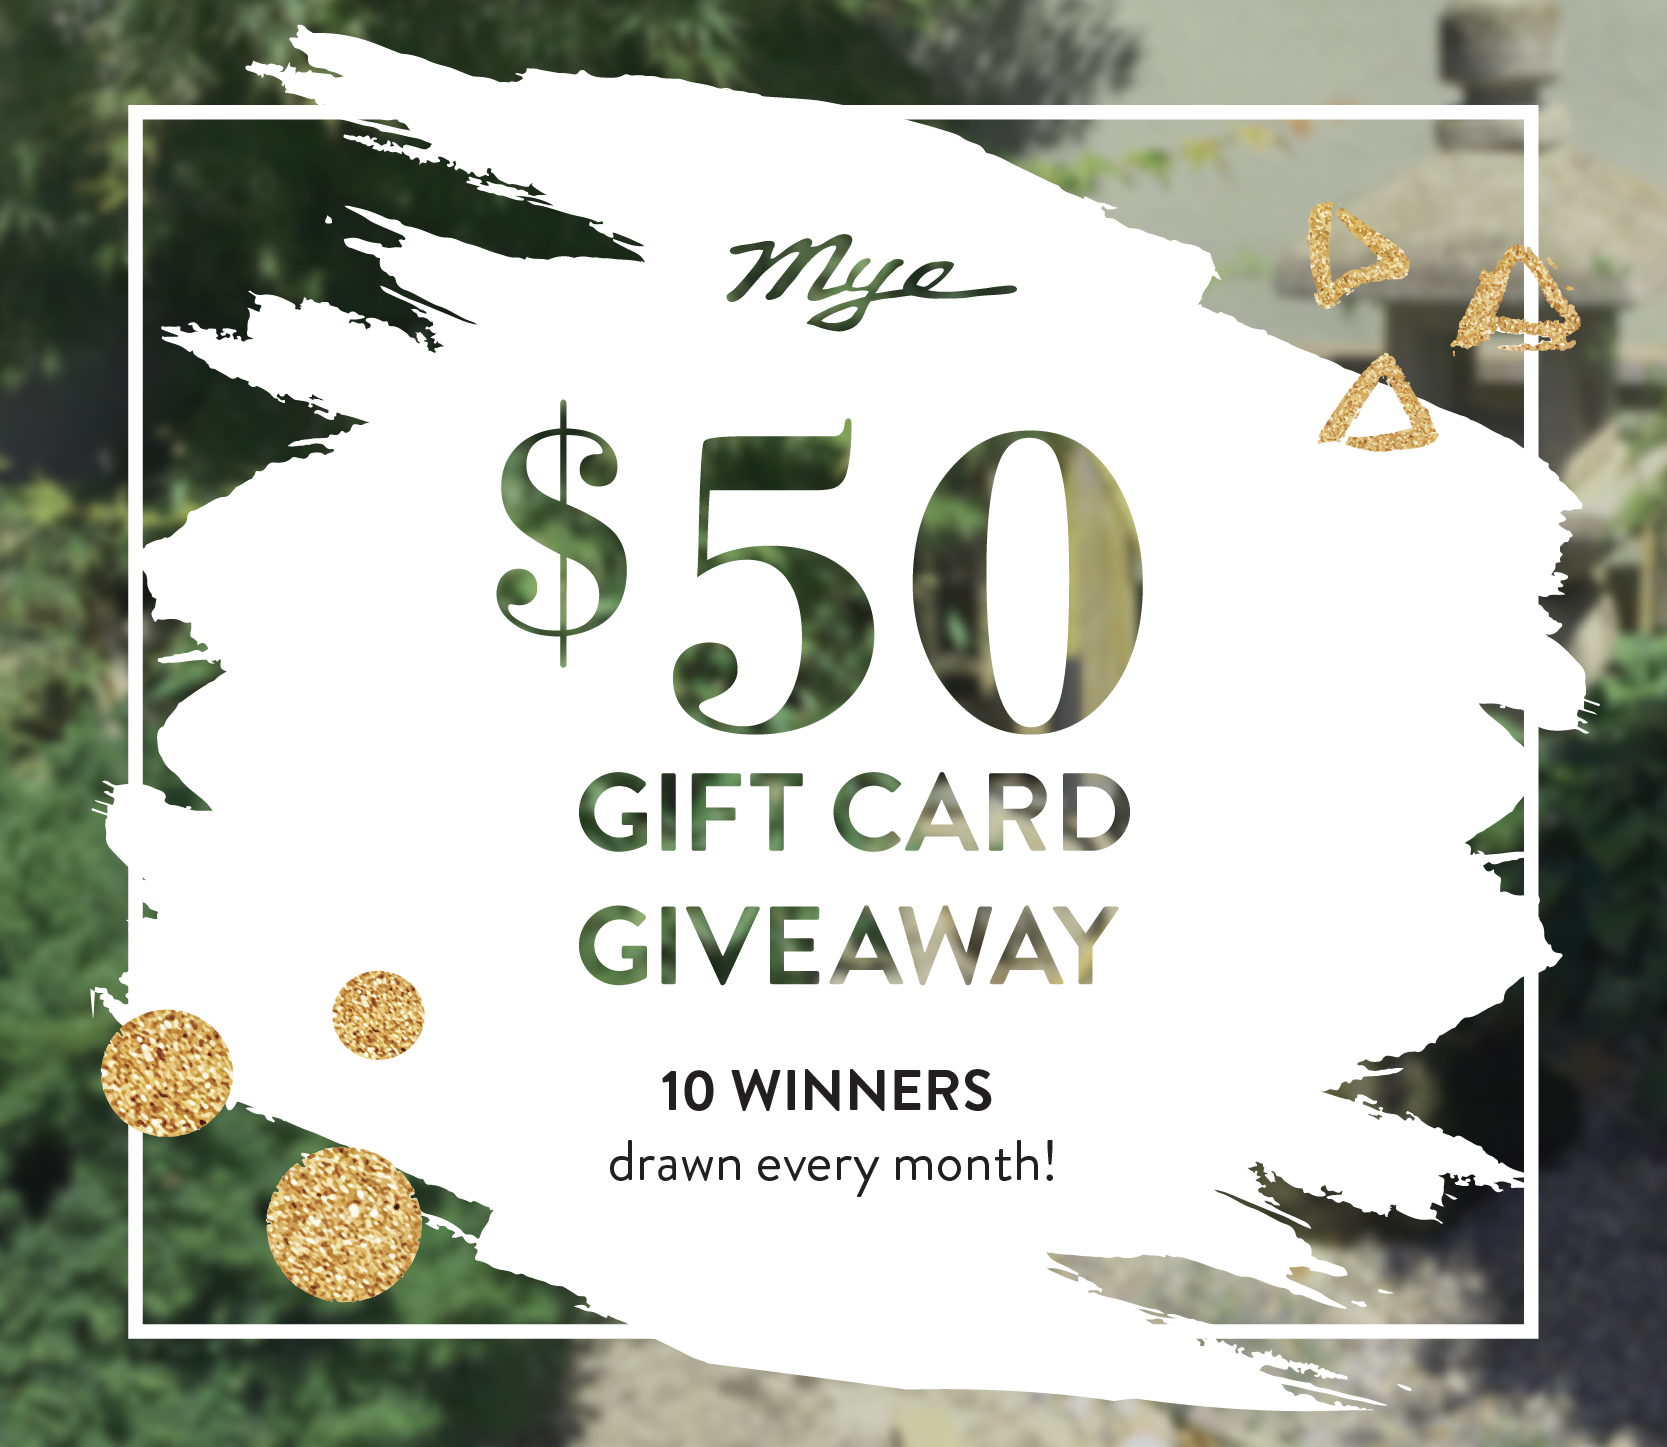 Mye_GiftCard_Giveaway_2019_Small_Web_2-02.png